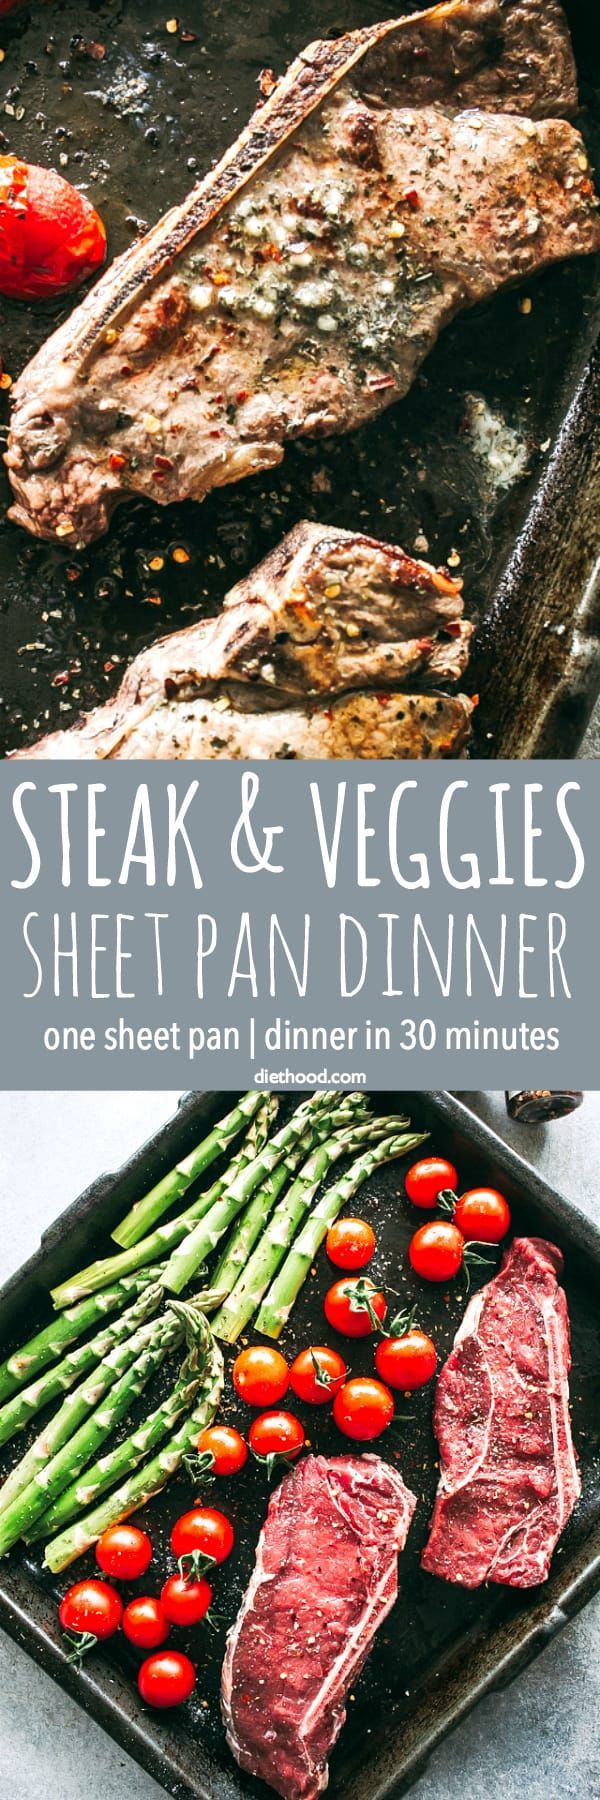 Steak and Veggies Sheet Pan Dinner – Perfectly seasoned sirloin steak, tender asparagus, and cherry tomatoes prepared together on just one sheet pan. SO easy and SO darn delicious!